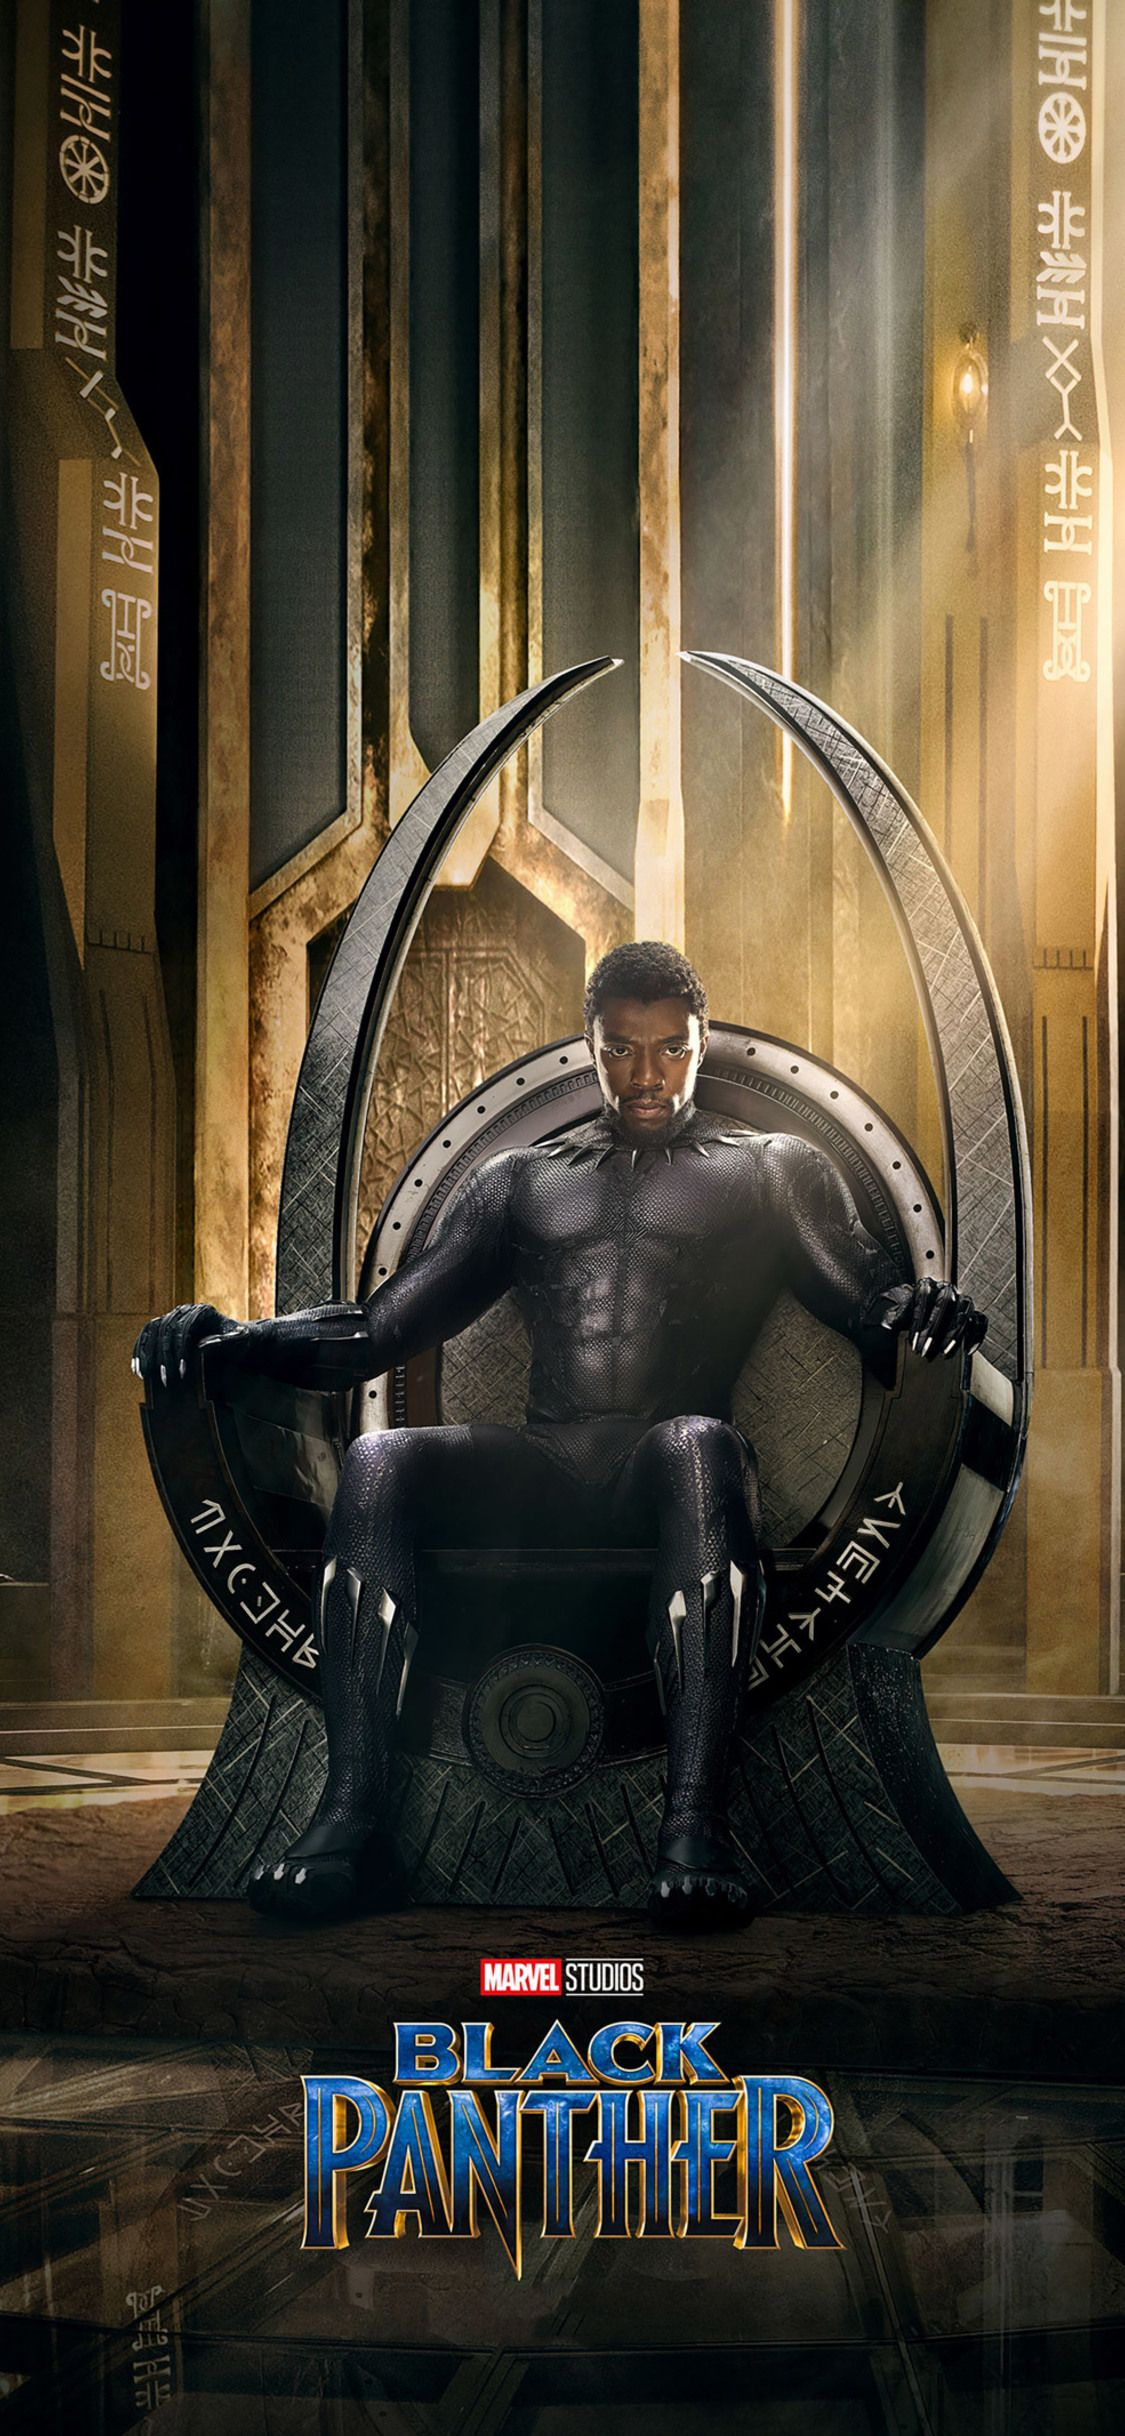 1125x2436 Black Panther 2018 4k Iphone Xs Iphone 10 Iphone X Hd 4k Wallpapers Images Backgrounds Black Panther Hd Wallpaper Black Panther Black Panther 2018